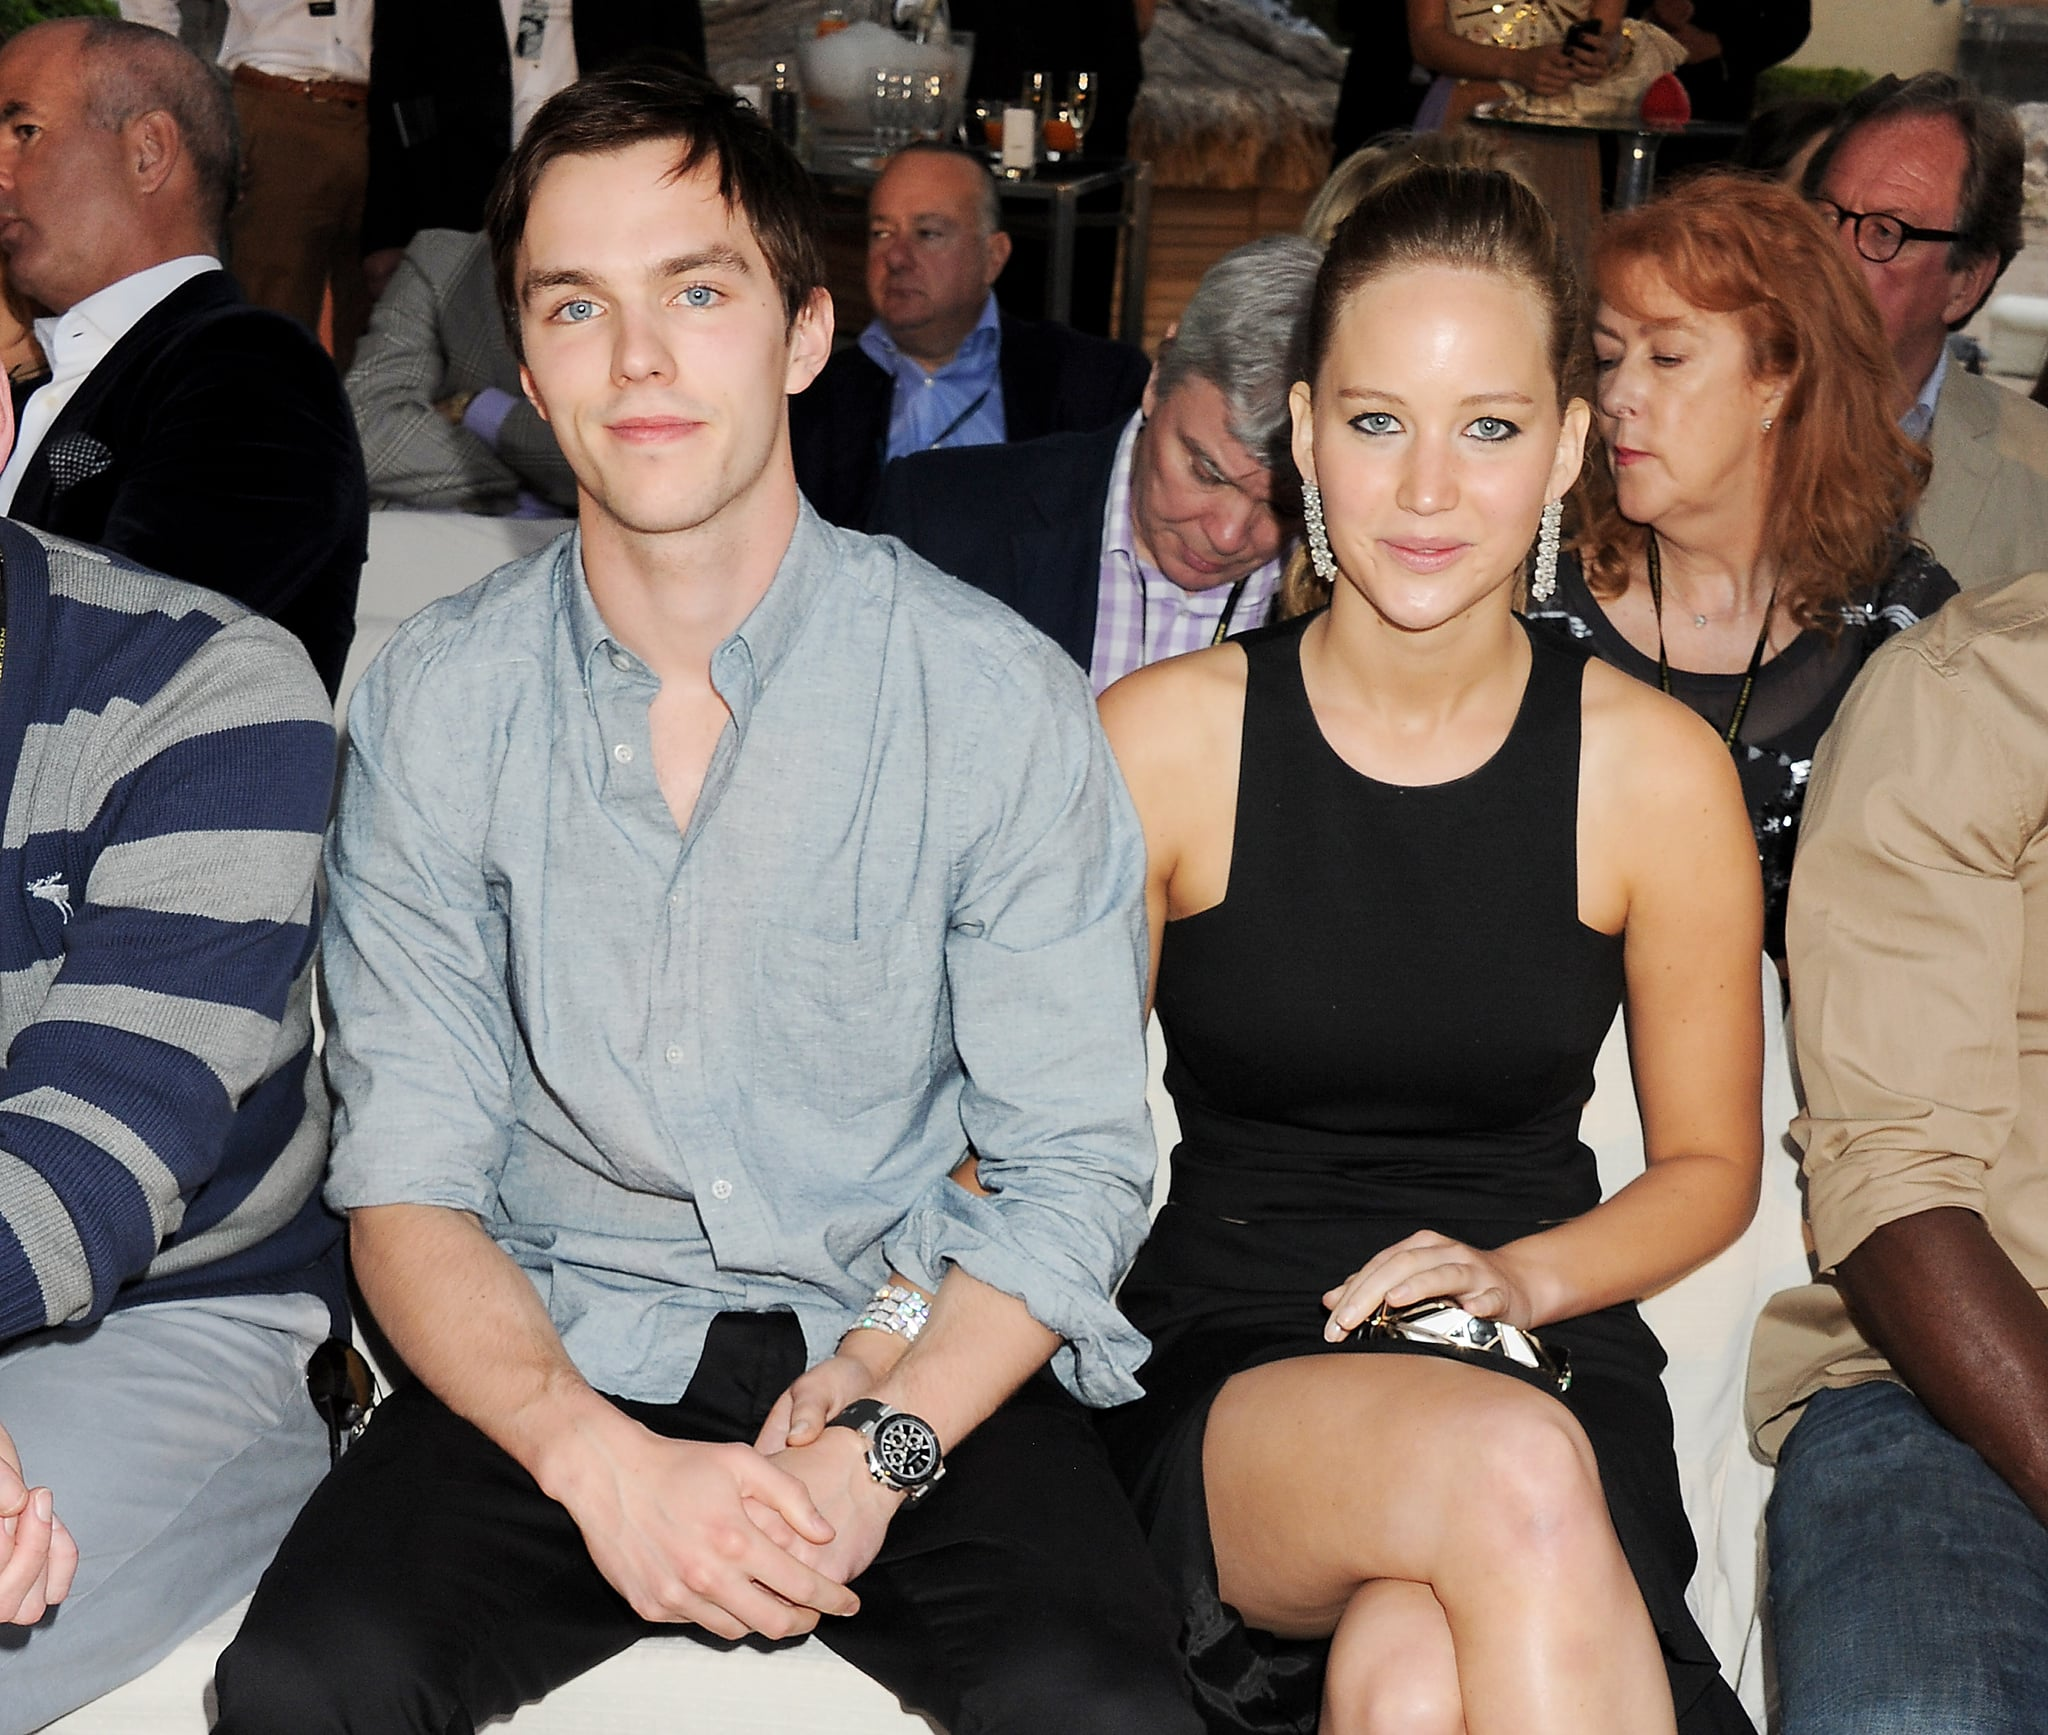 Jennifer Lawrences Ex Boyfriend Nicholas Hoult Has Opened Up About The Leaked Nude Photos Of The Actress On Thursday Nicholas Made An Appearance On Good